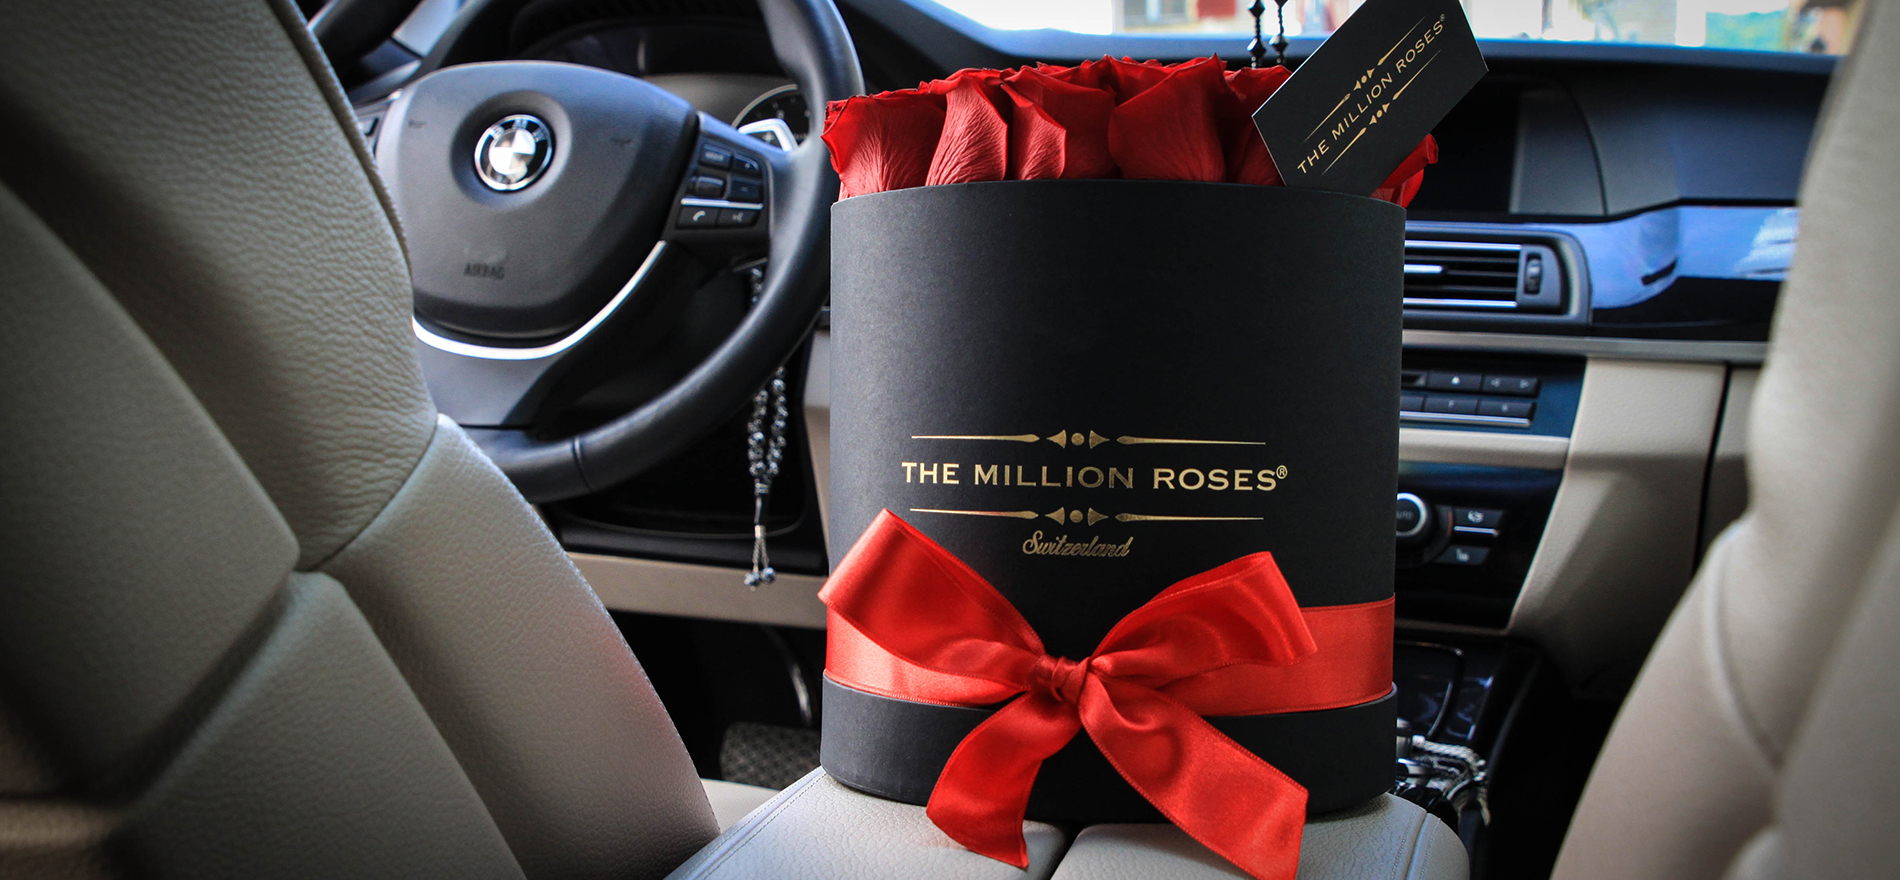 The Million Roses Switzerland Bmw innen